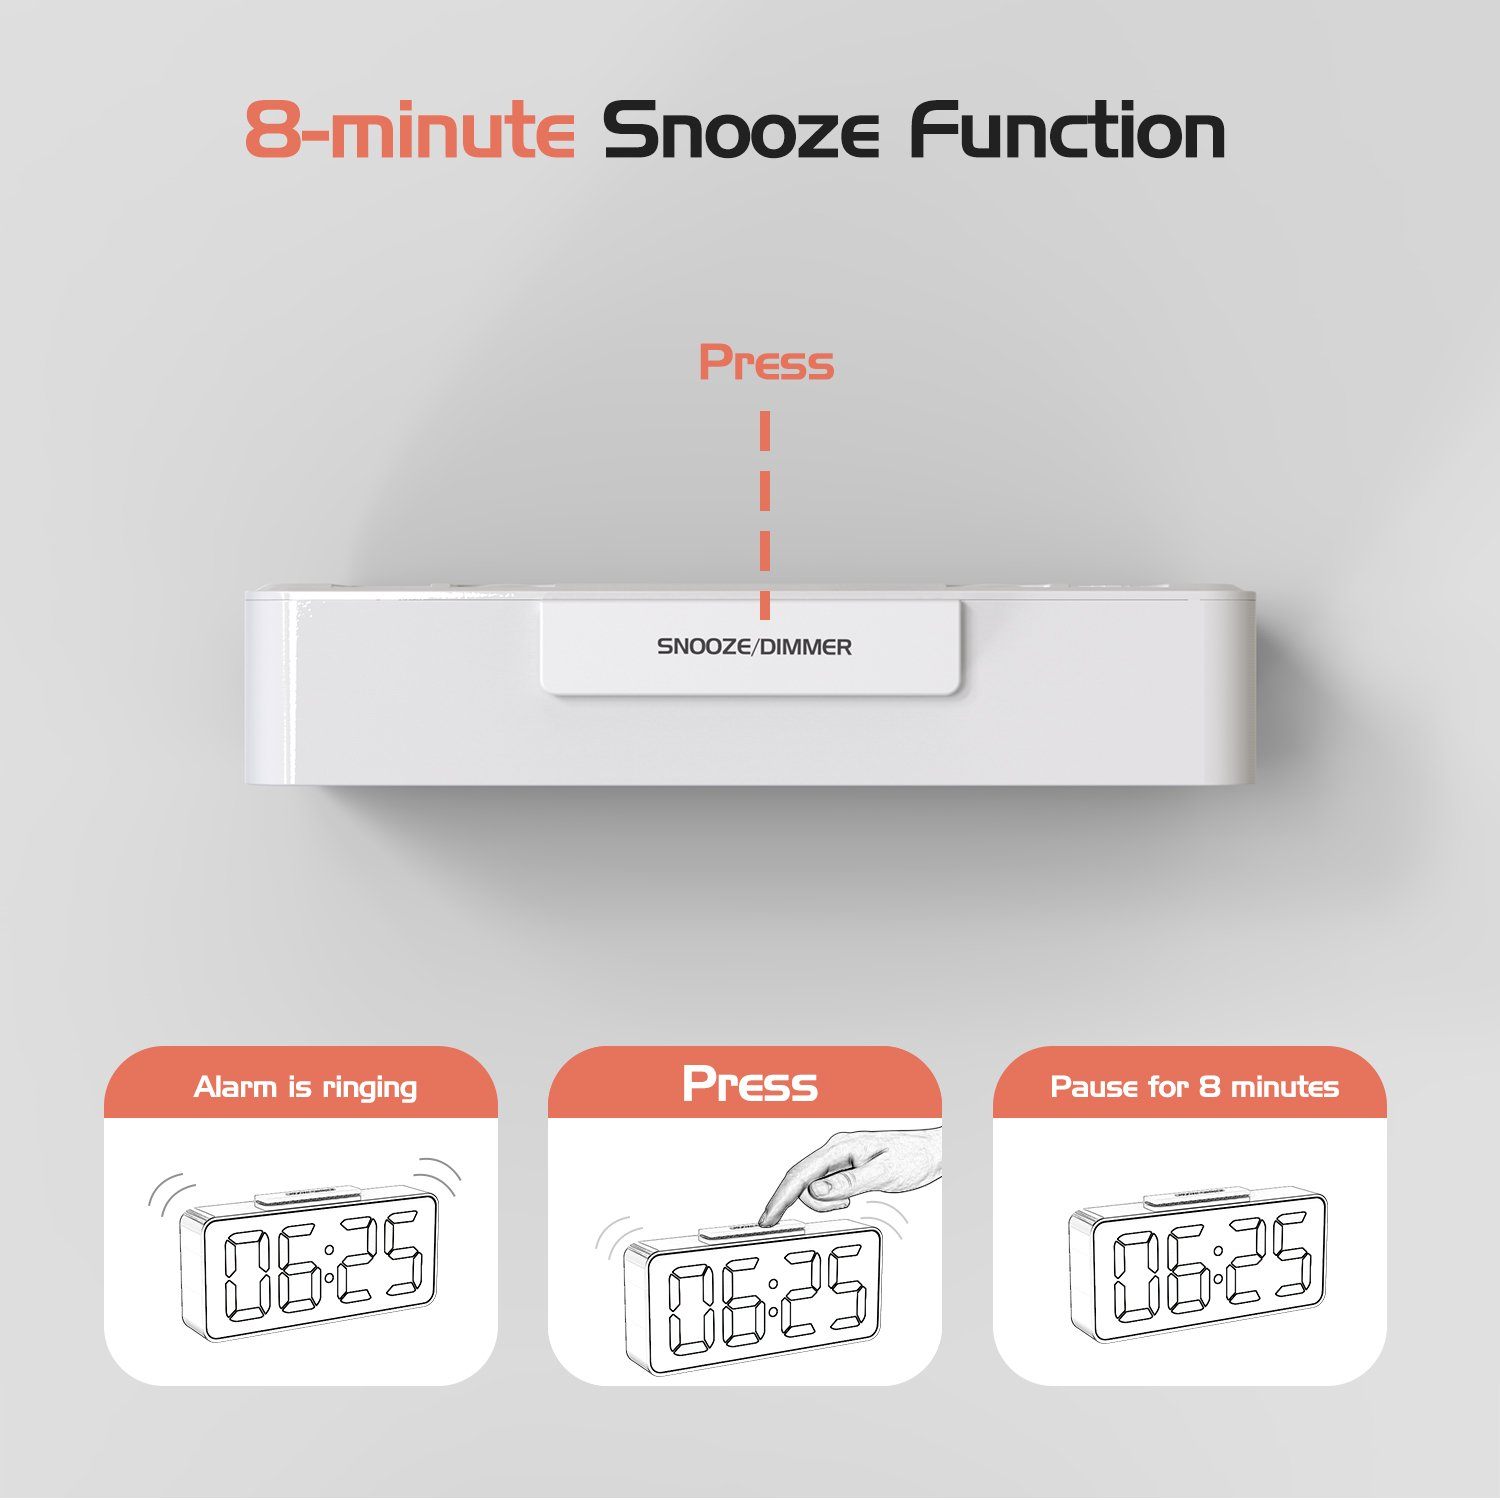 Moko Led Alarm Clock With 89 Large Display Usb Ports Jumbo Power Saver Circuit Diagram Electricity Saving Devices For Homes Snooze Dimmer And Voice Control Battery Backup 12 24 Hours White Home Audio Theater